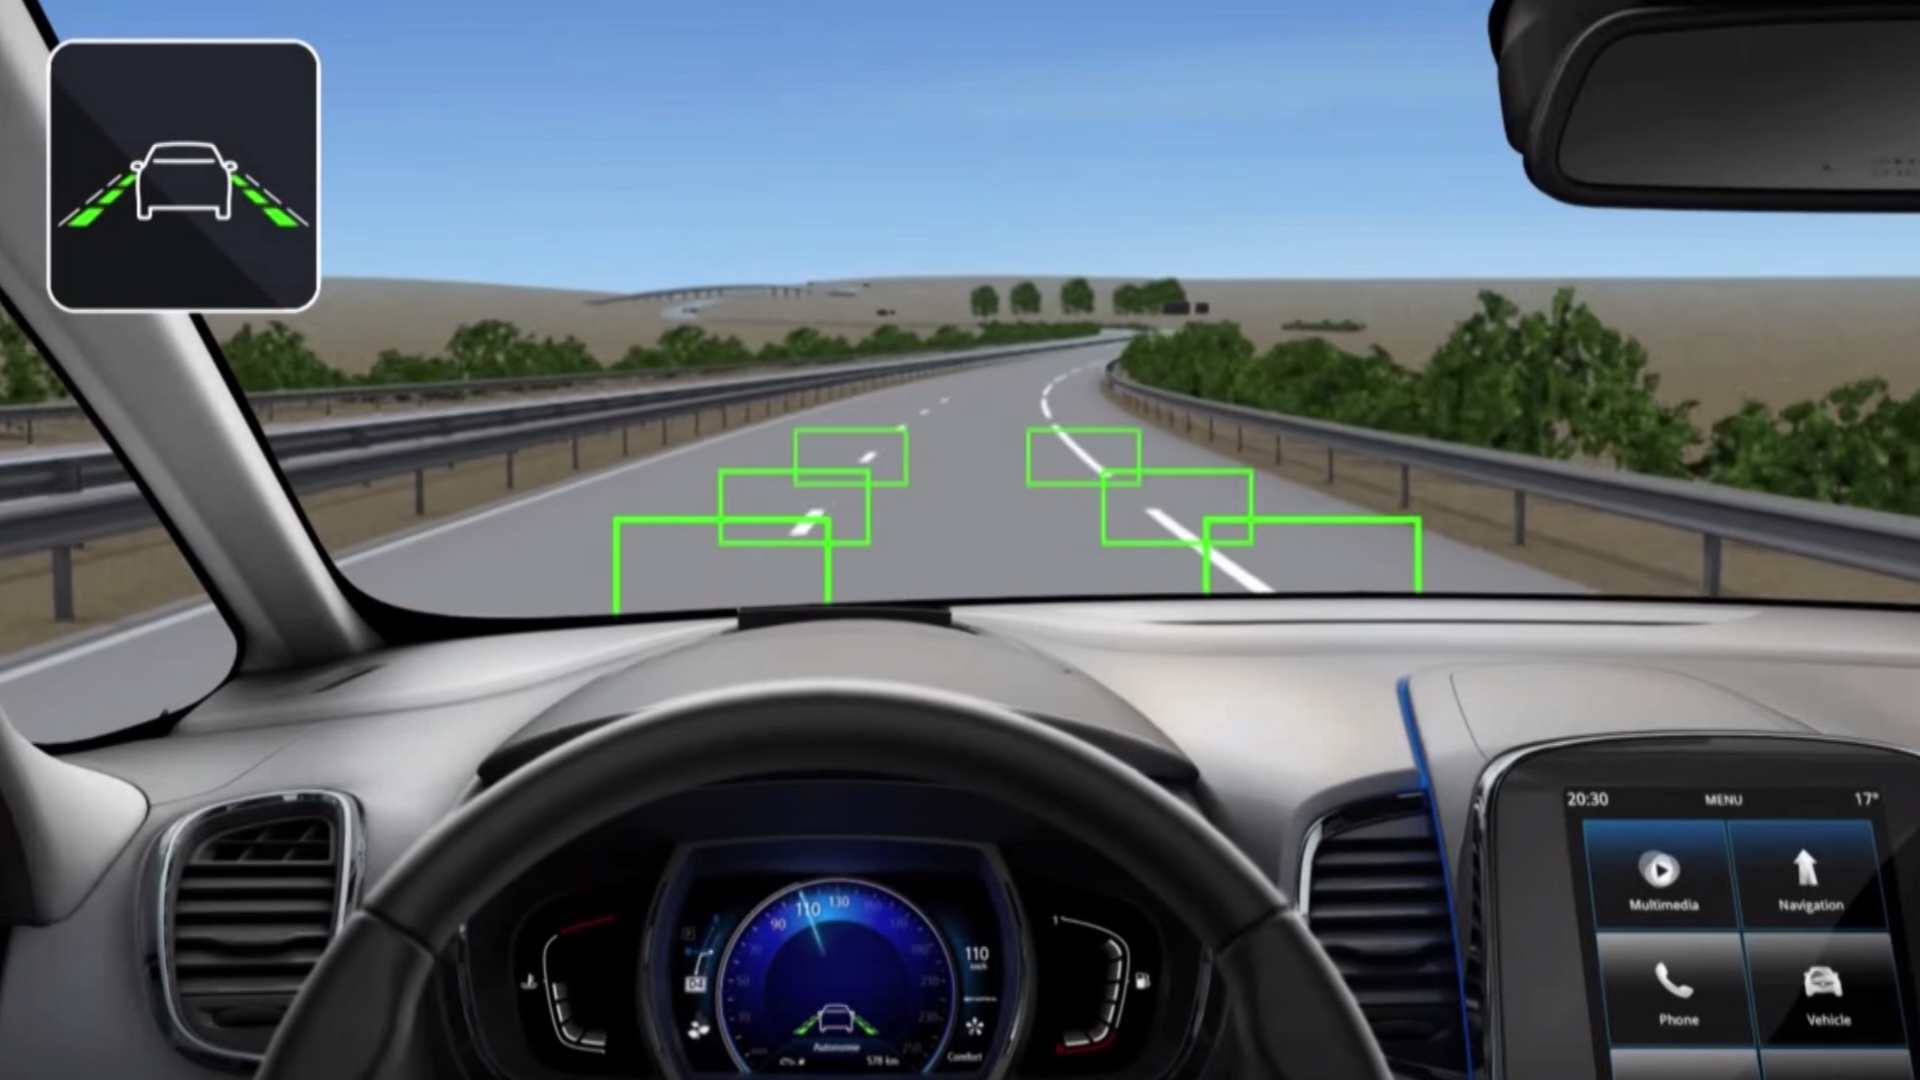 Iihs Stus Lane Departure Warning And Blind Spot Detection Systems Curb Accidents Save Lives